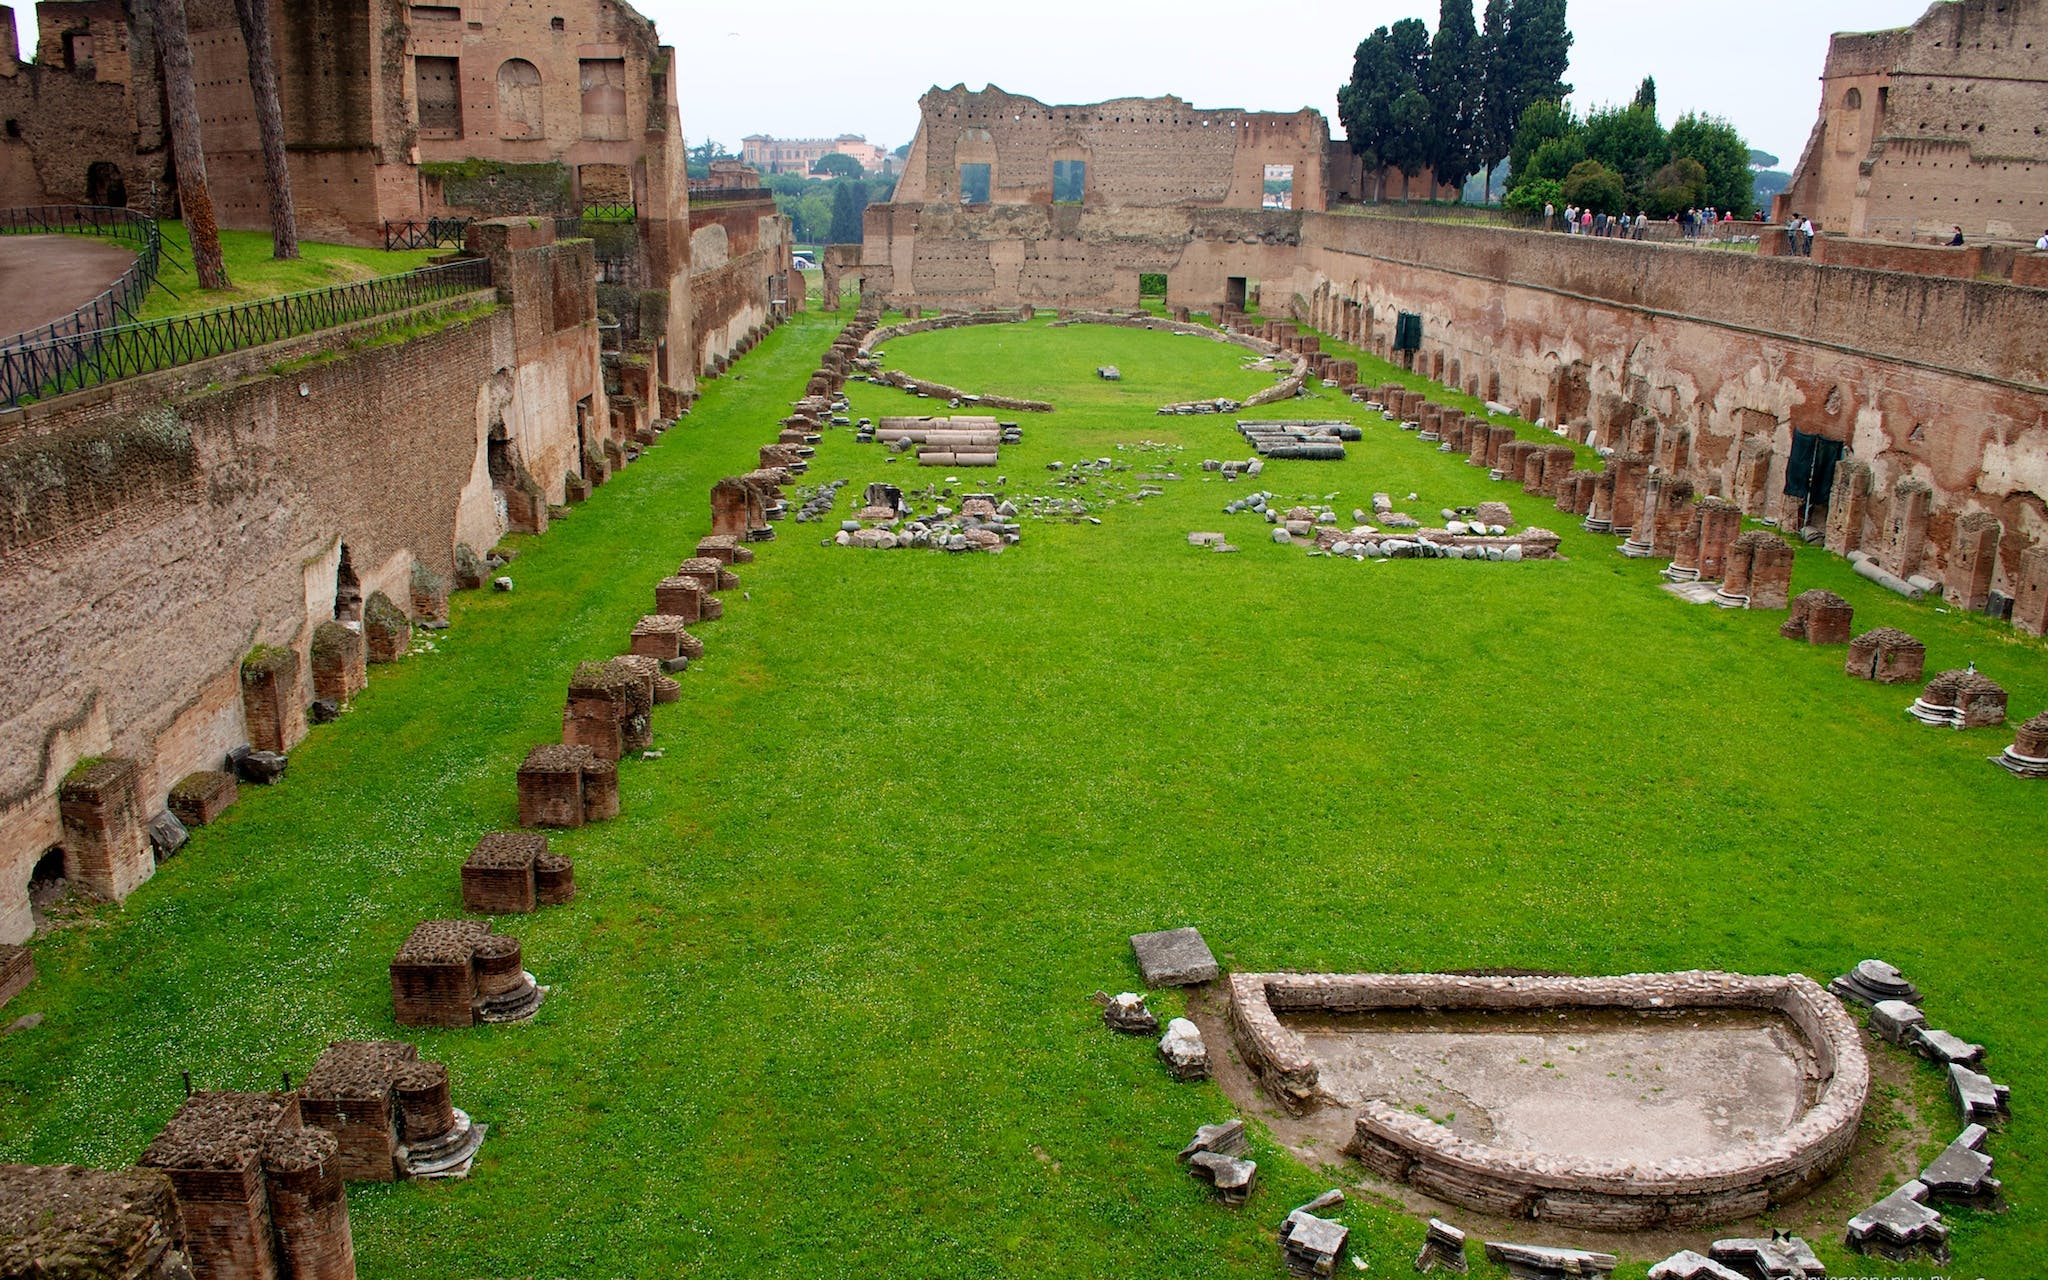 piazza navona & domitian stadium underground walking tour - express entry-3